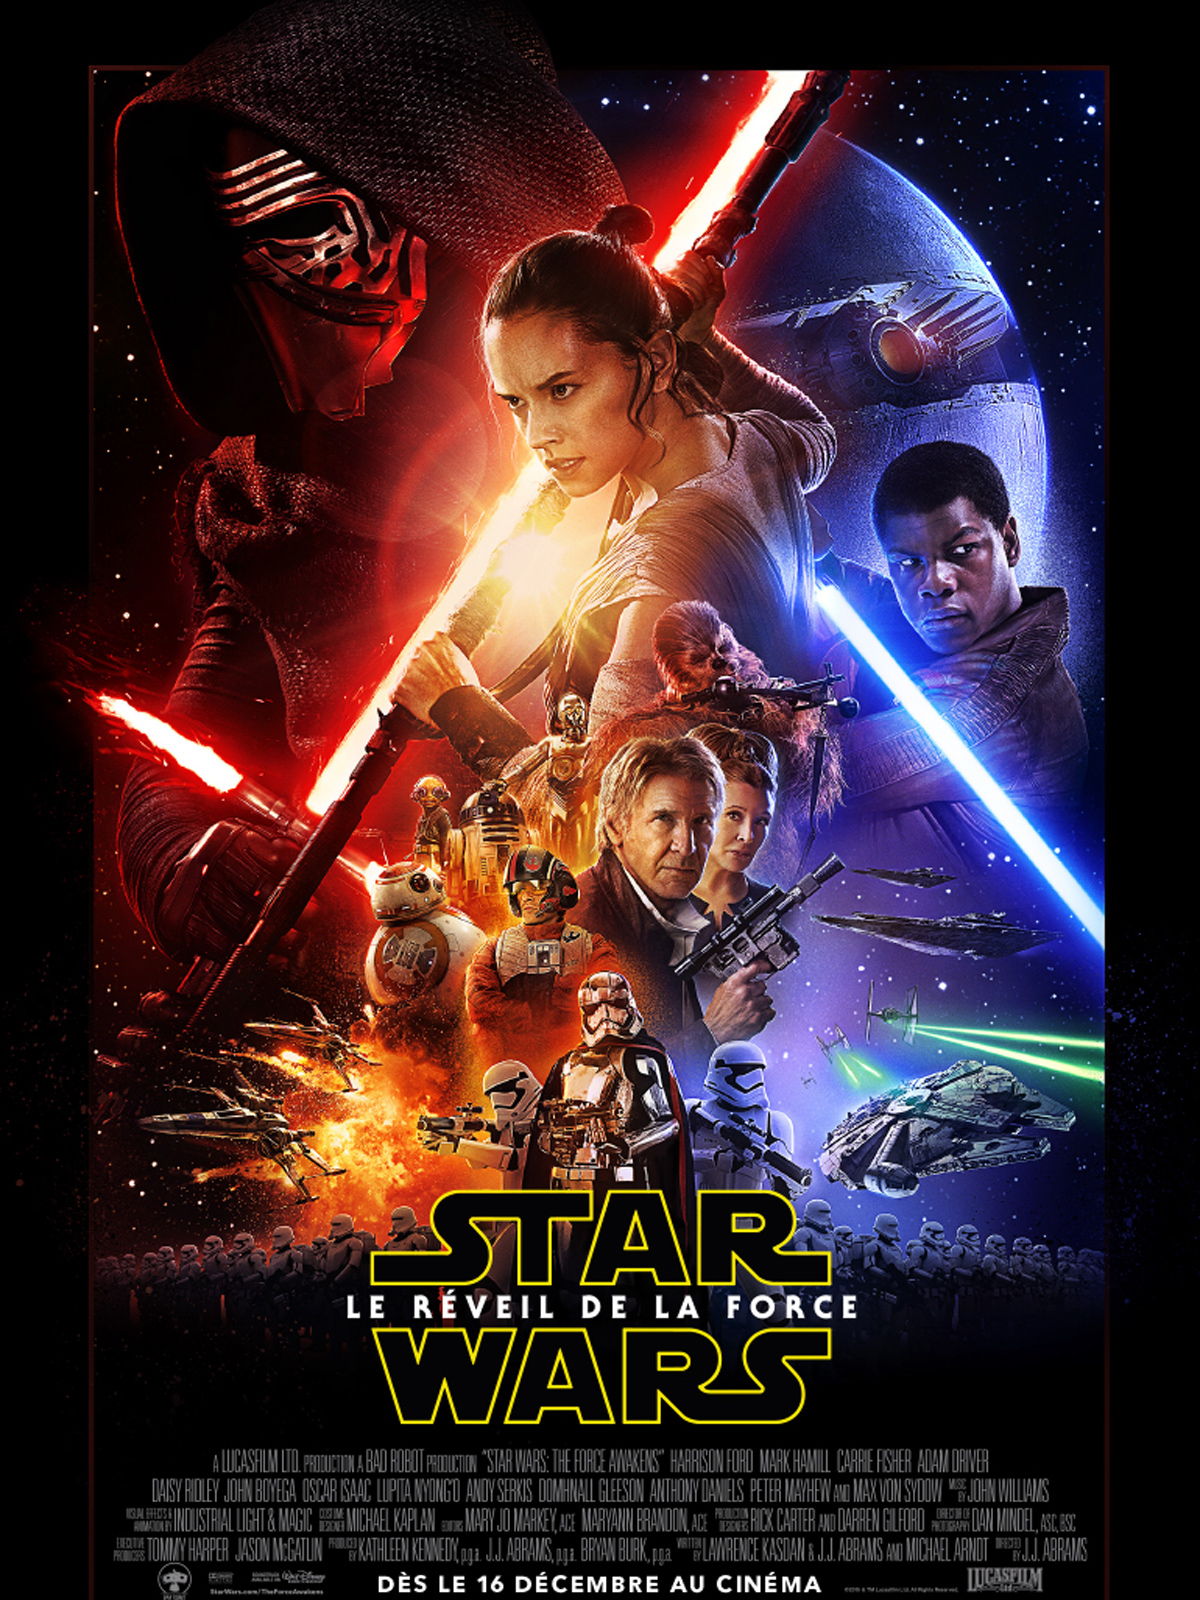 Star Wars: Episode VII Le réveil de la force